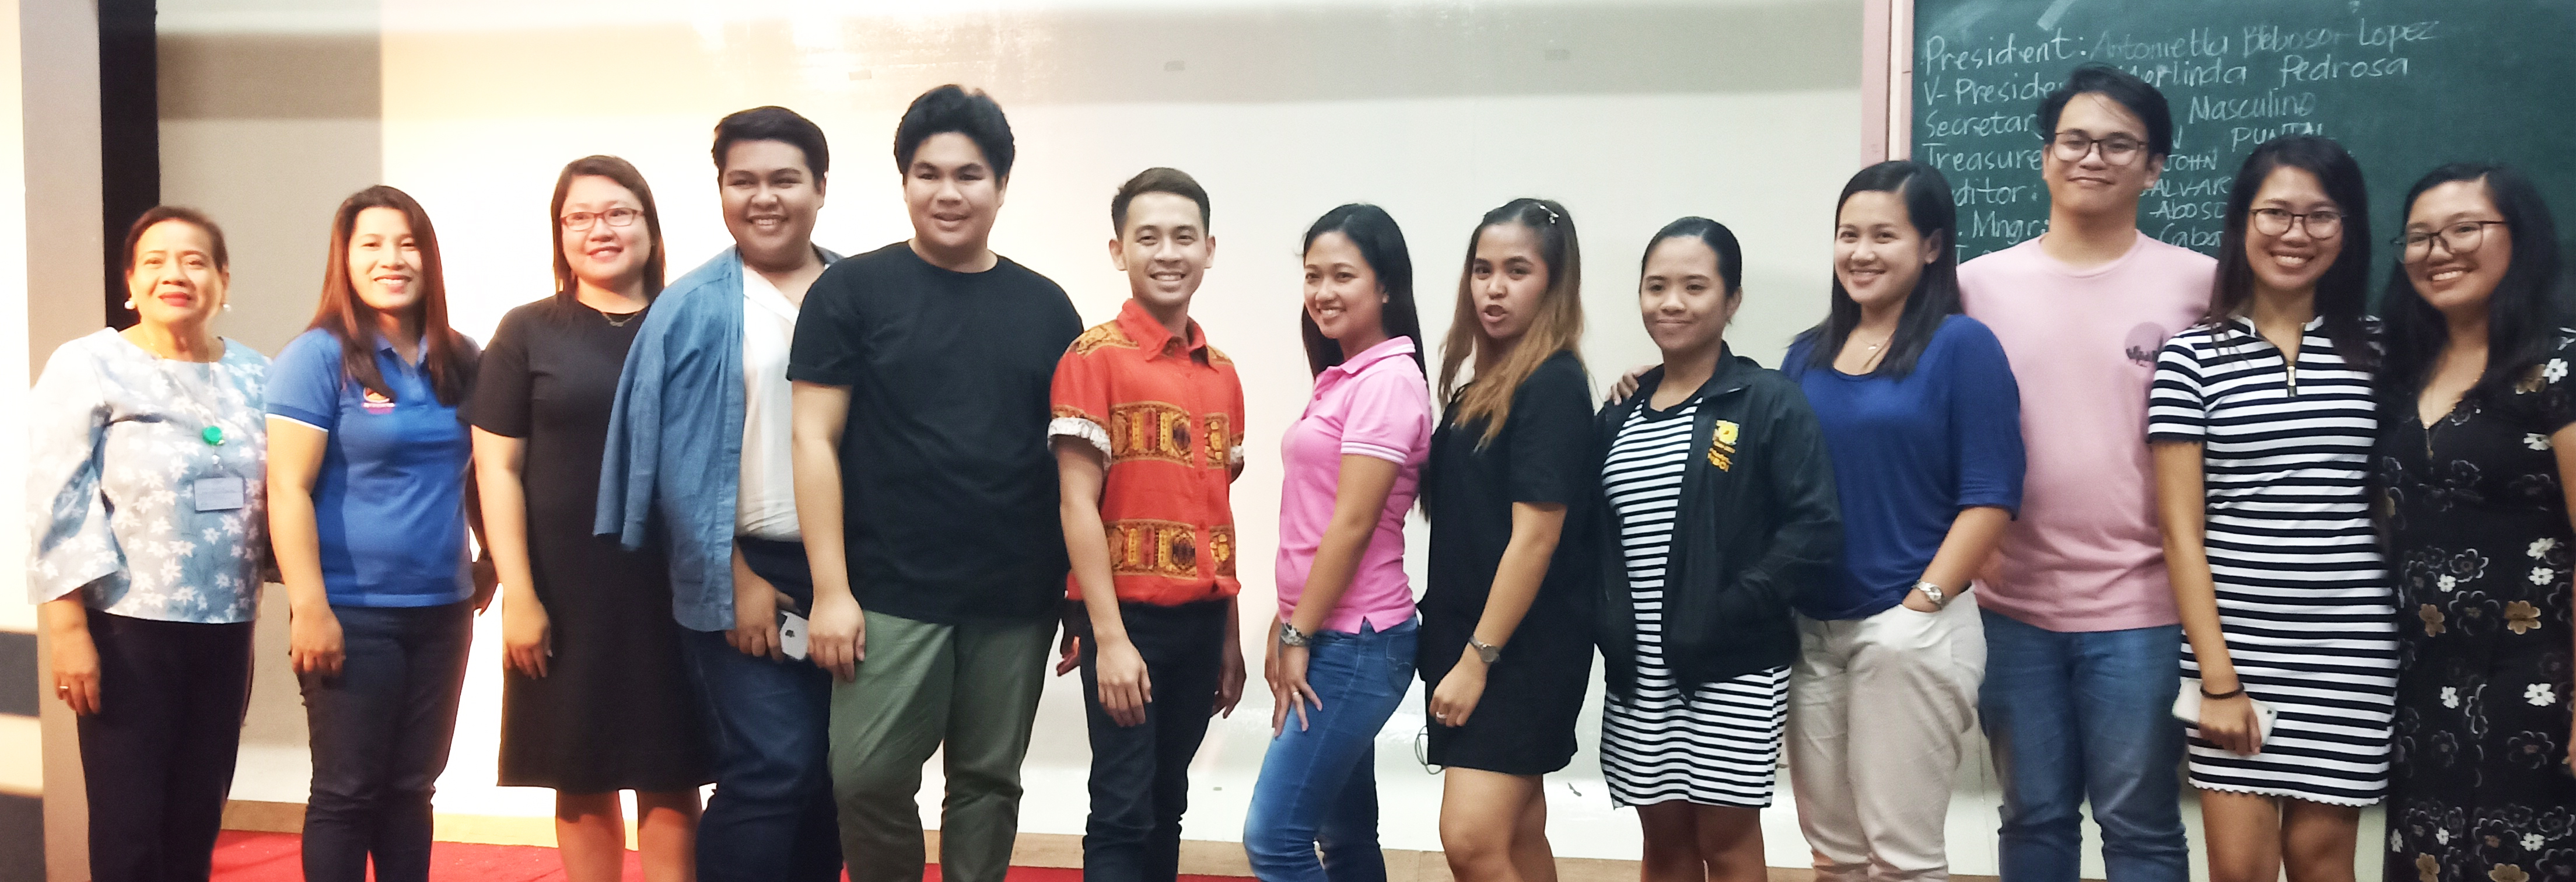 MASS COMMUNICATION ALUMNI ELECT OFFICERS